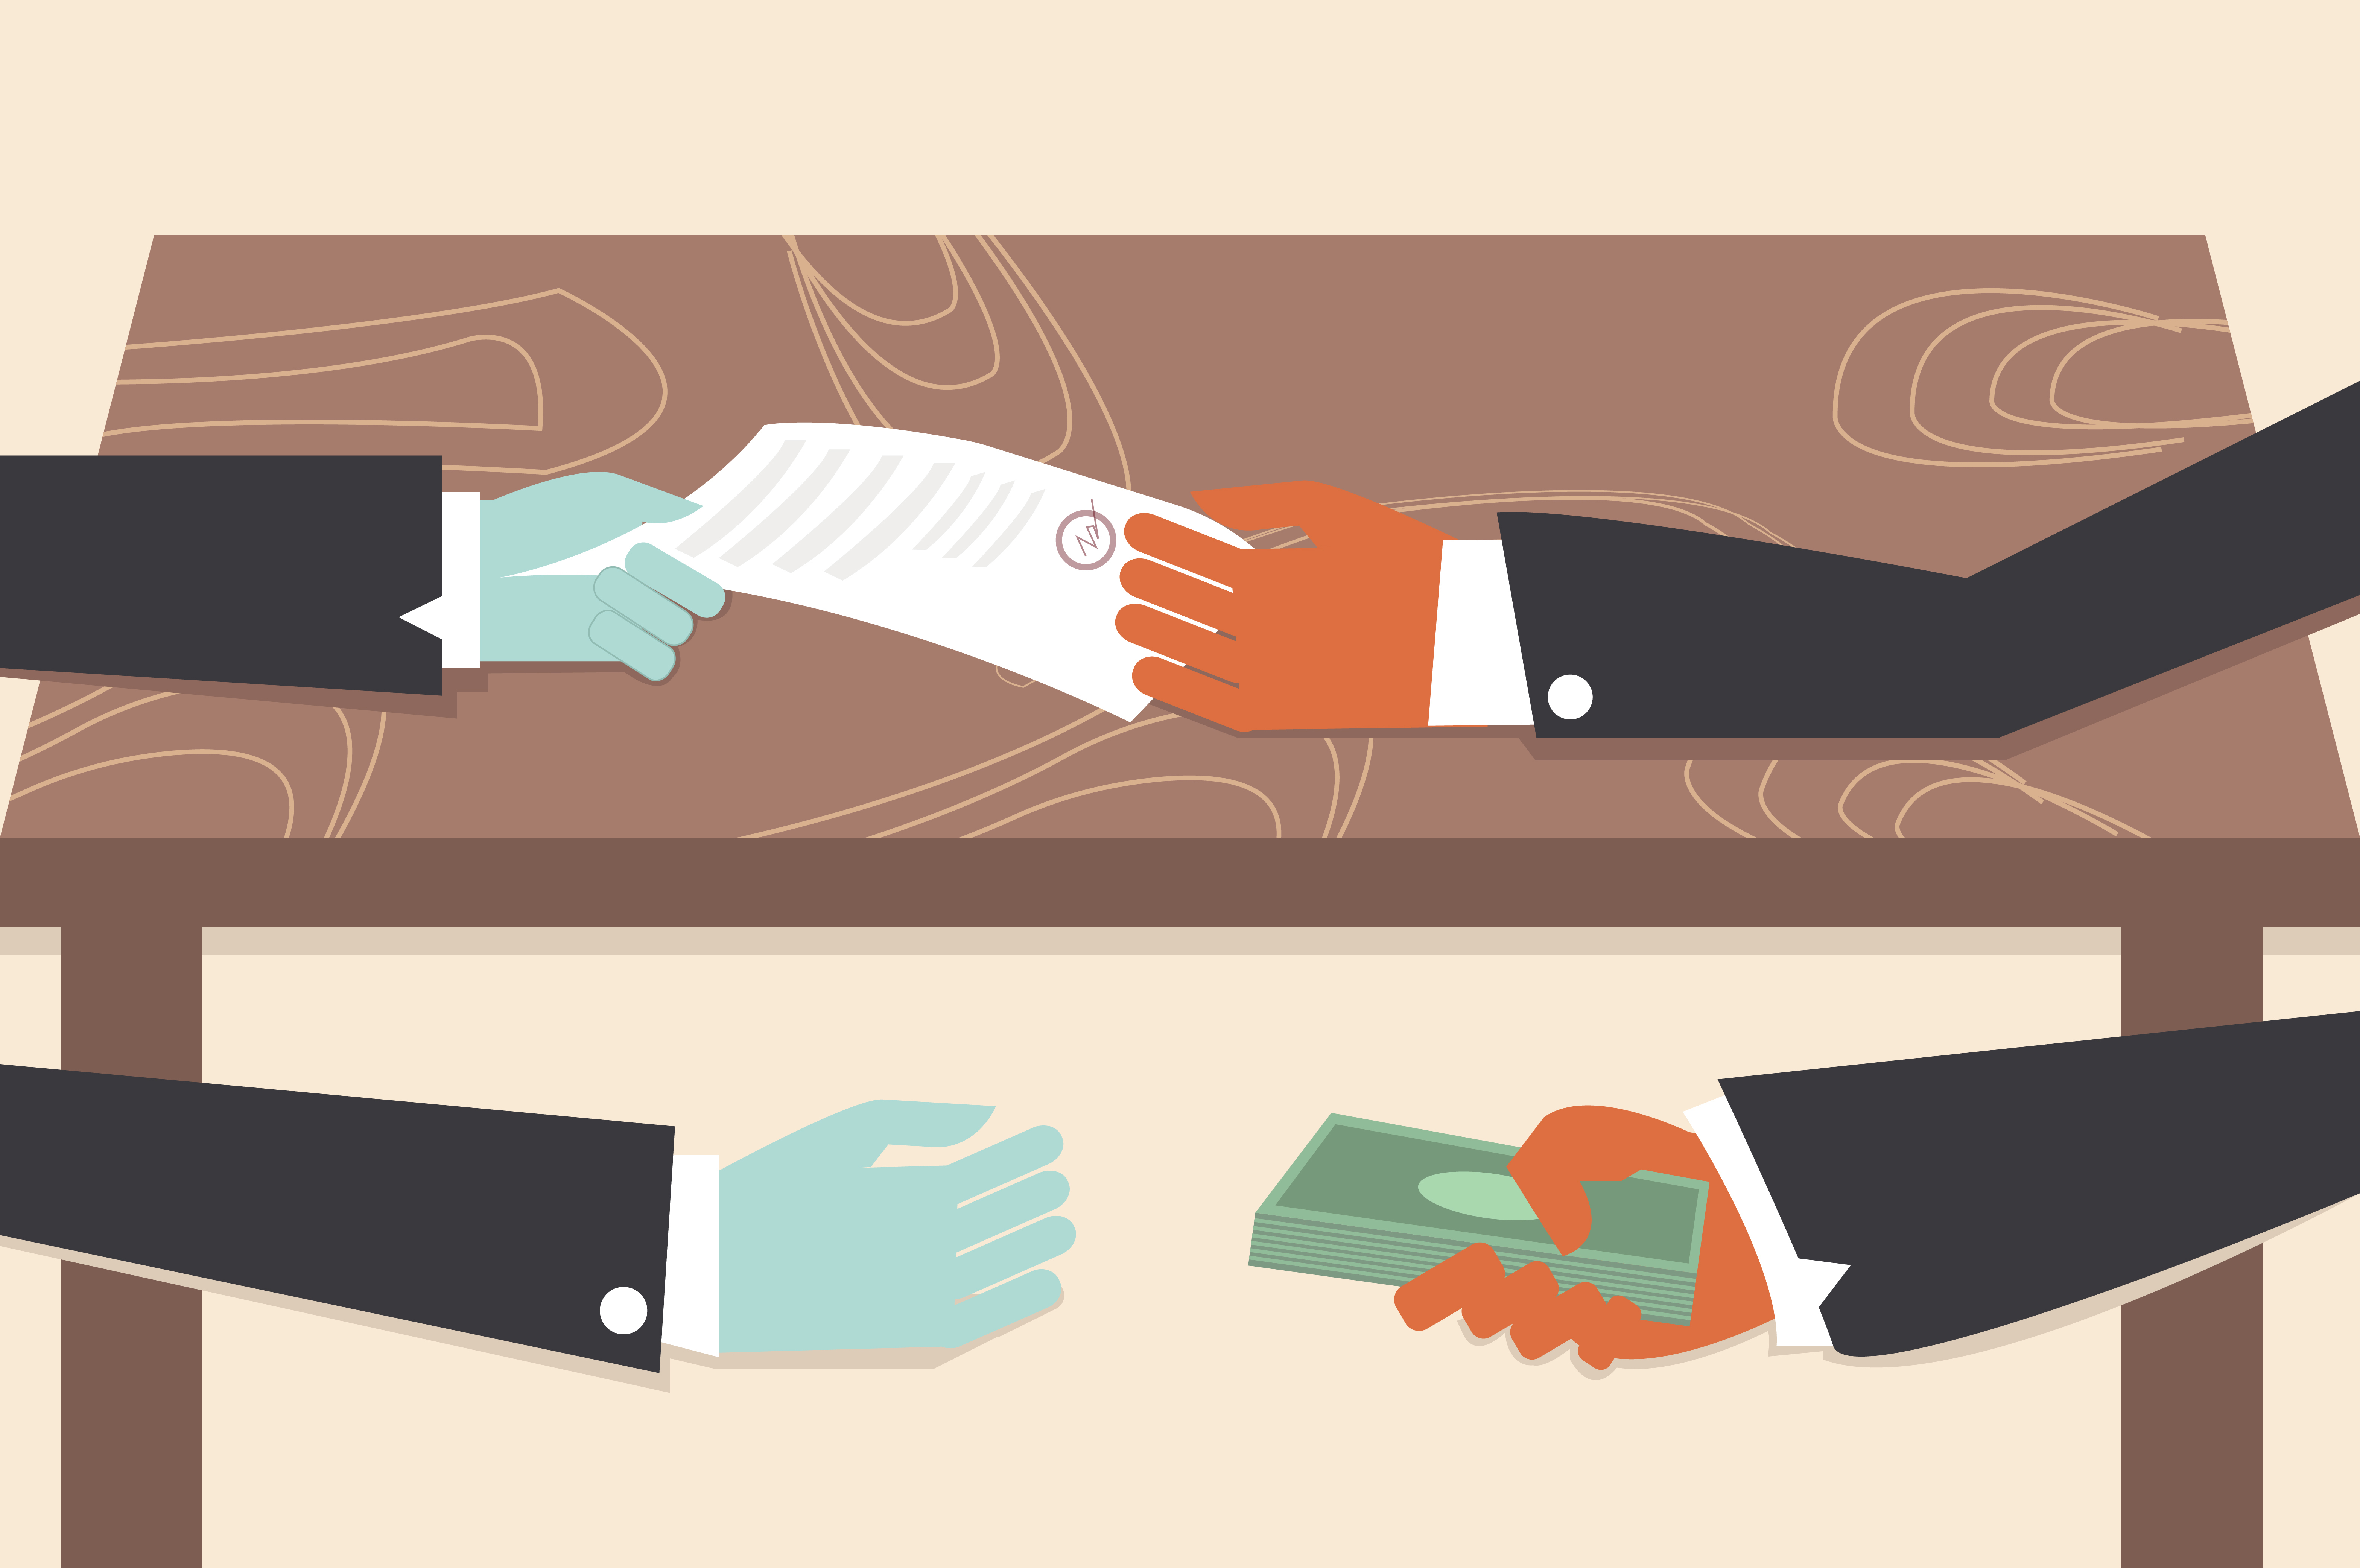 5 ways to help prevent prosecution for bribery